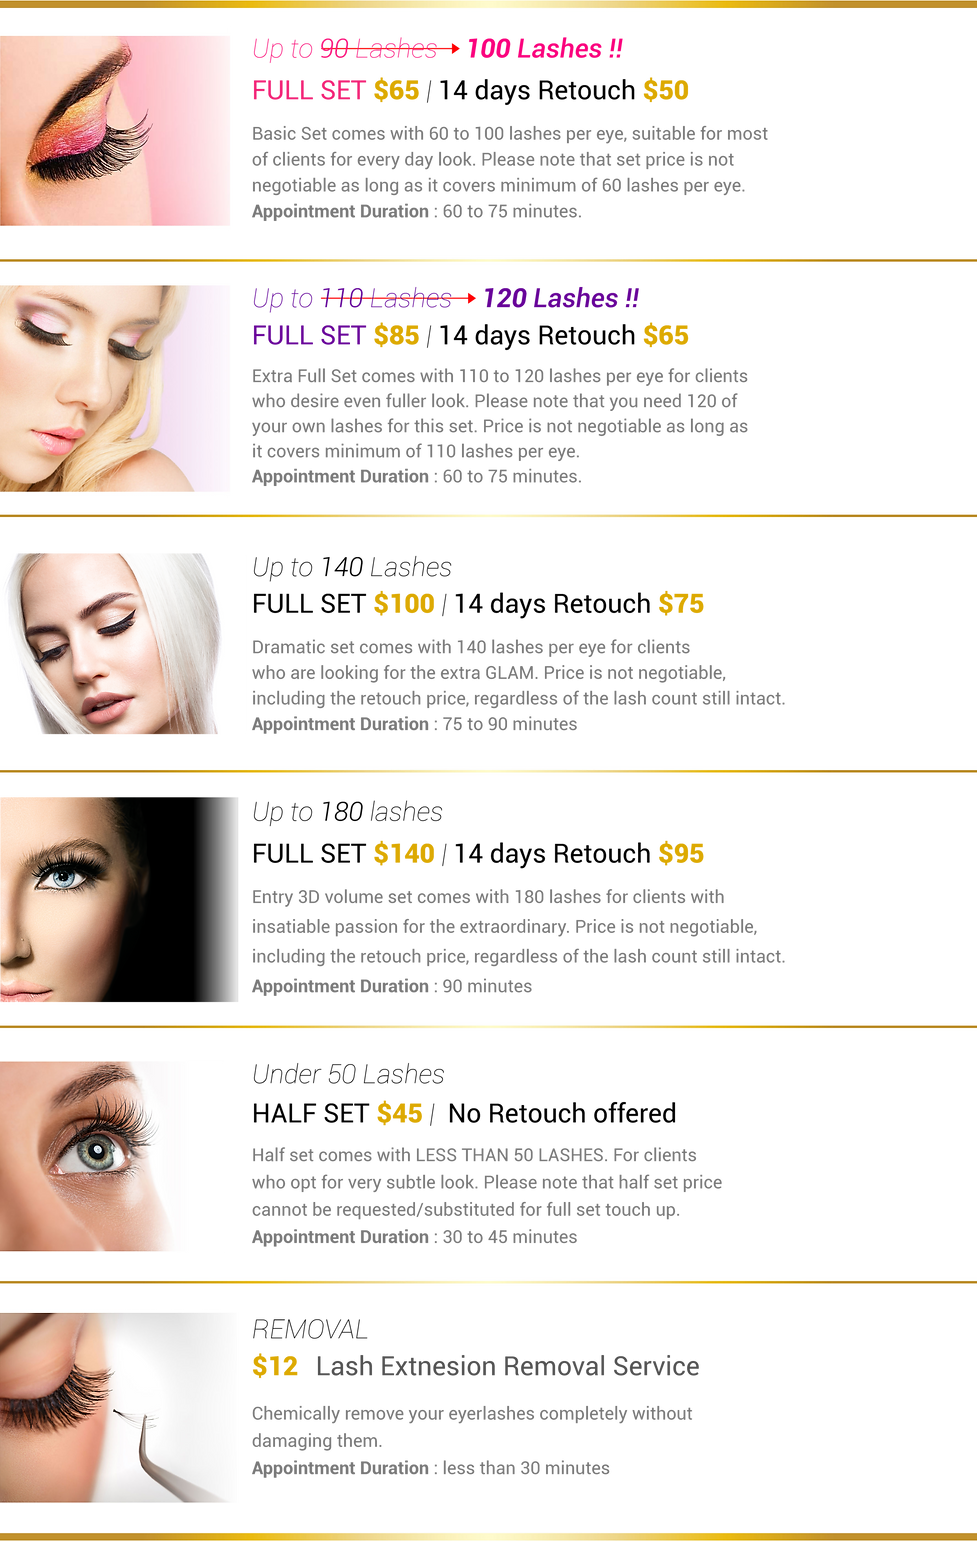 newyork-secret-eyelash-site-price-for-de